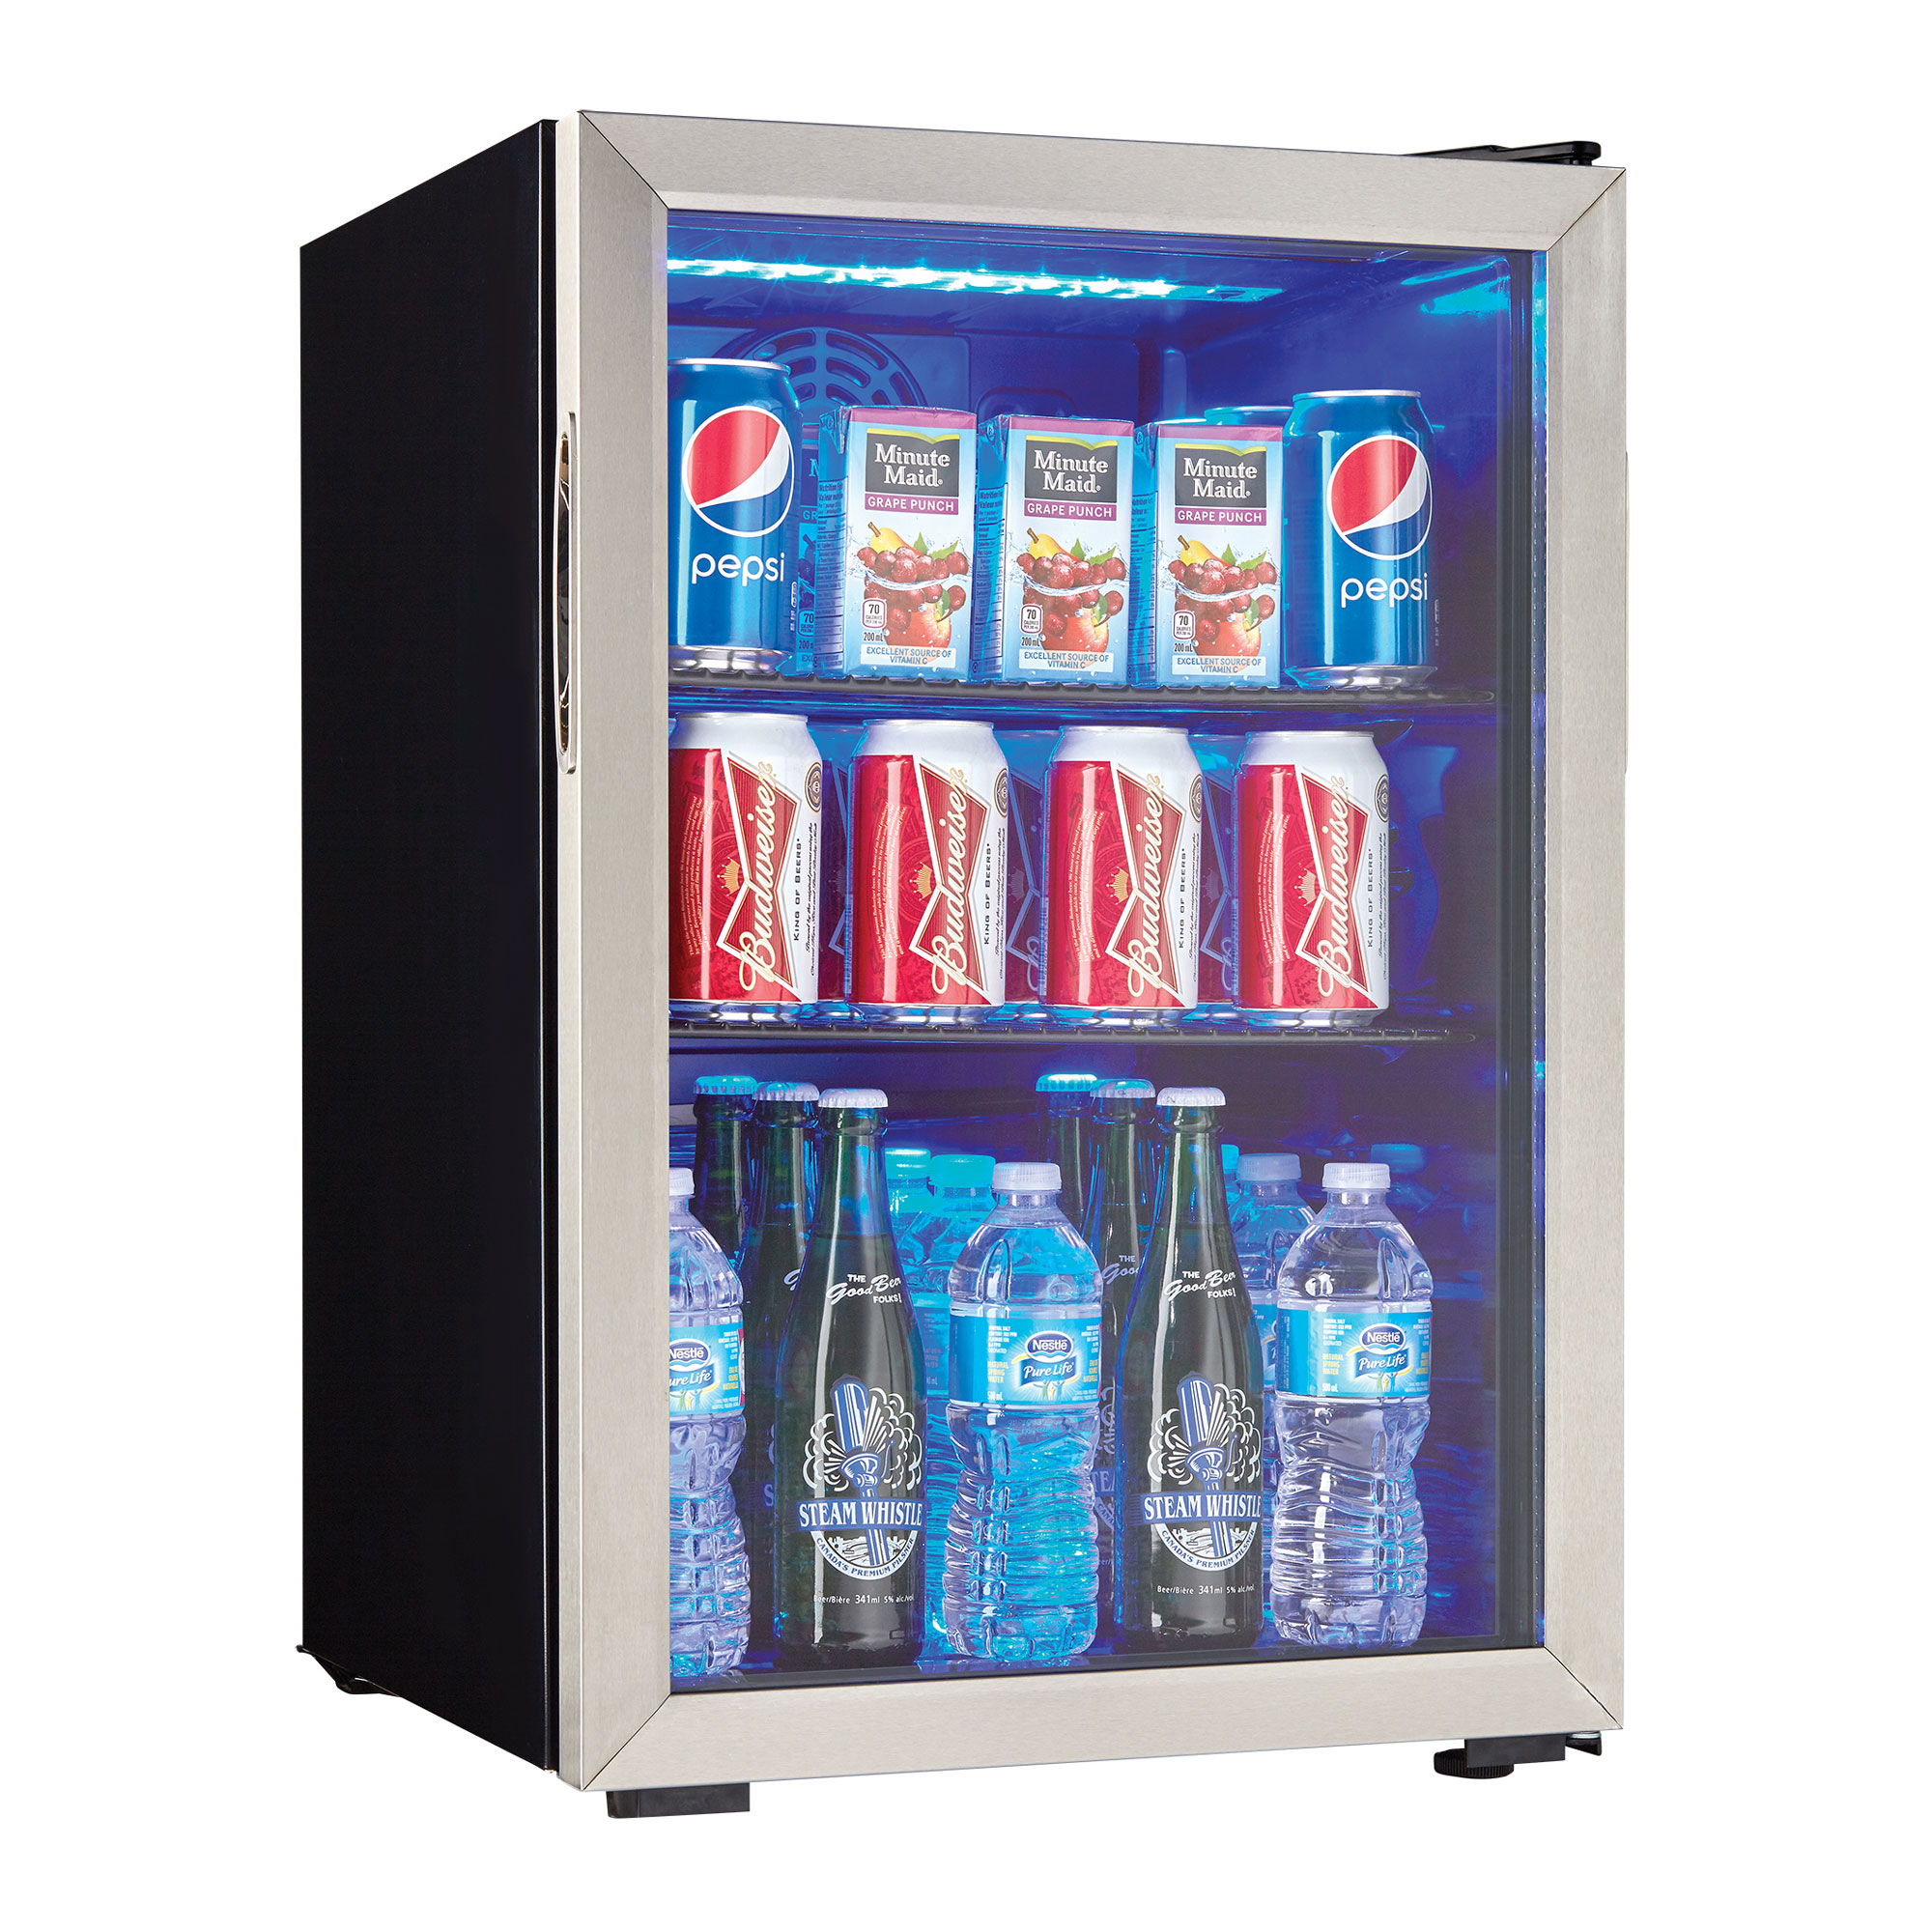 Danby 95 Can 2.6 Cu. Ft. Free Standing Beverage Center Mini Fridge